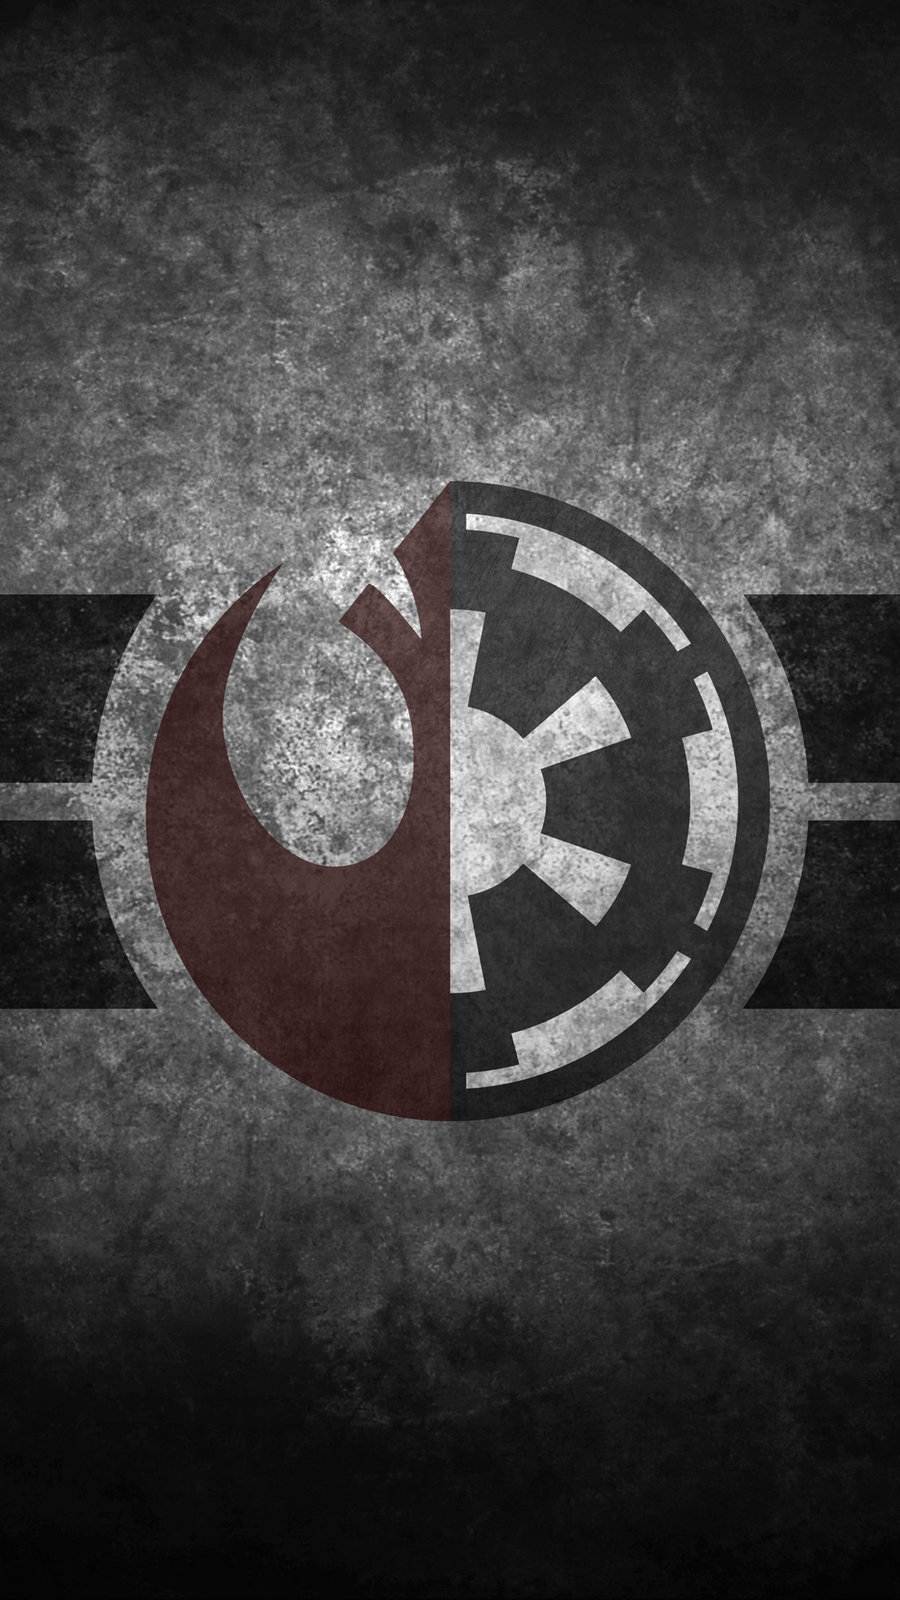 War Wallpapers For Mobile Mobile Phone wa Star Wars 900x1600